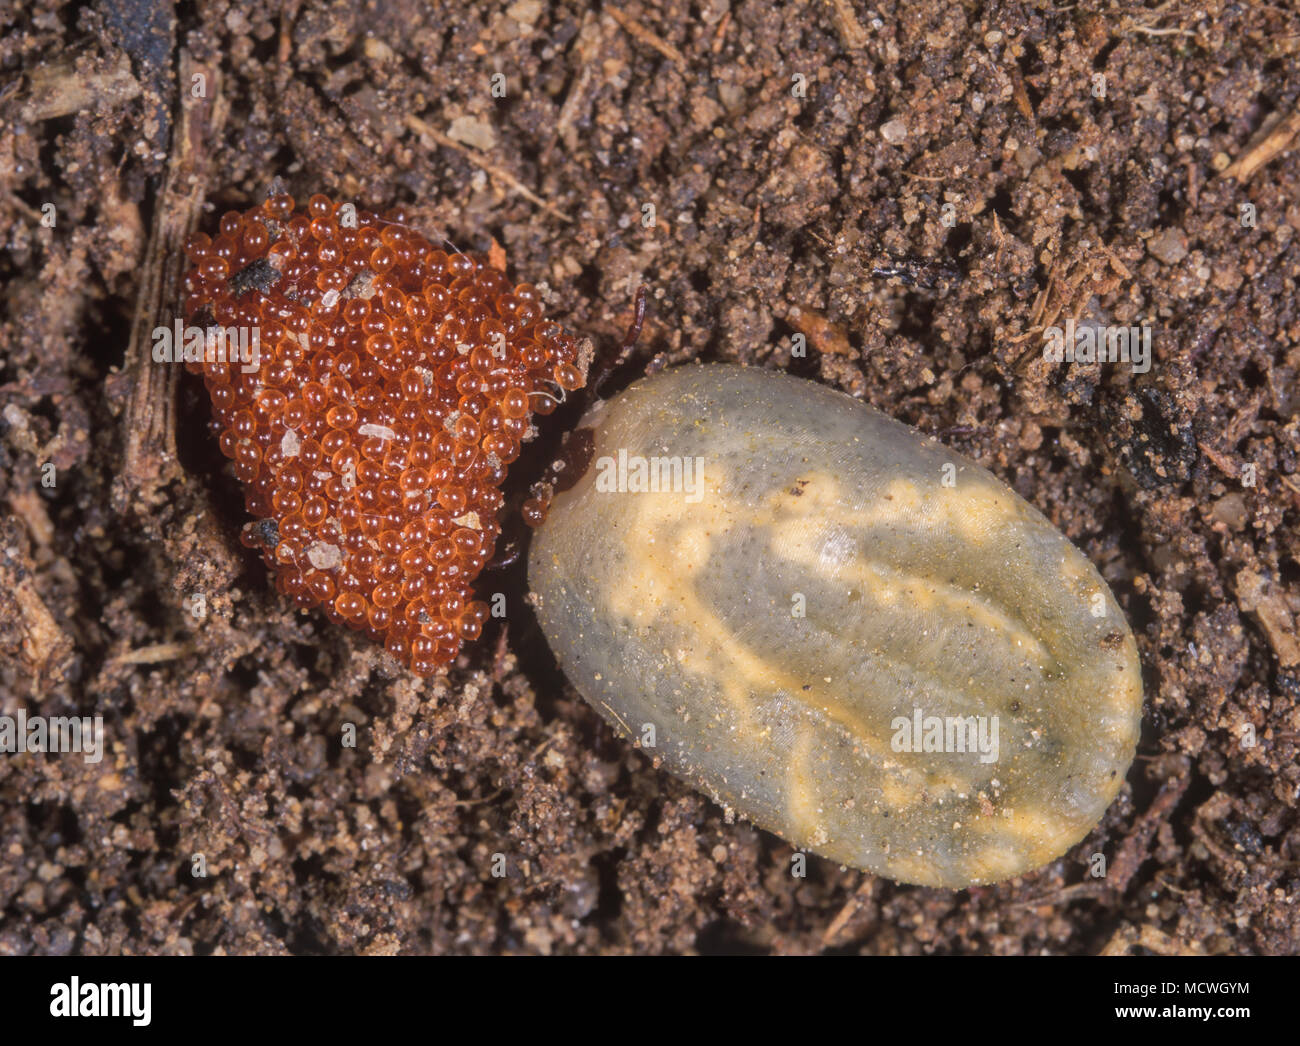 Castor bean tick, Ixodes ricinus. Engorged female with eggs. It's an European species of hard-bodied tick. It may reach a length of 11 mm when engorge - Stock Image